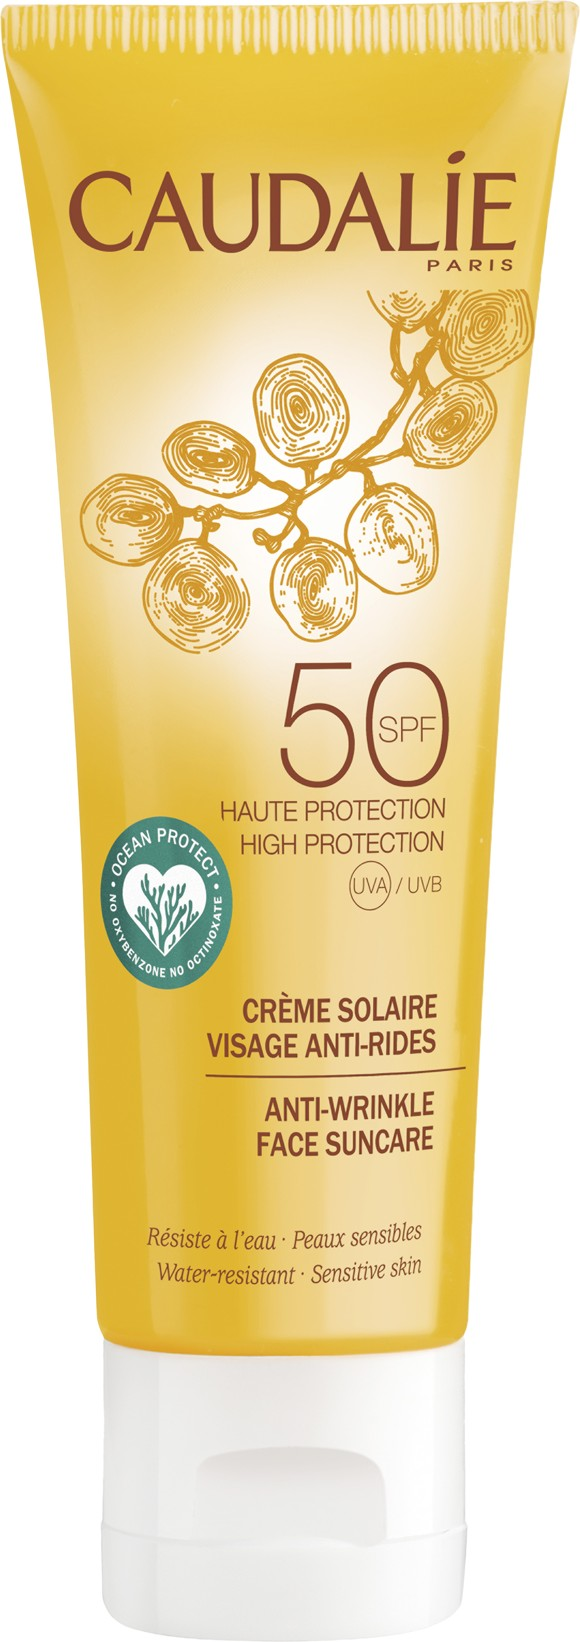 Caudalie - Anti-wrinkle Face Suncare SPF 50 50 ml